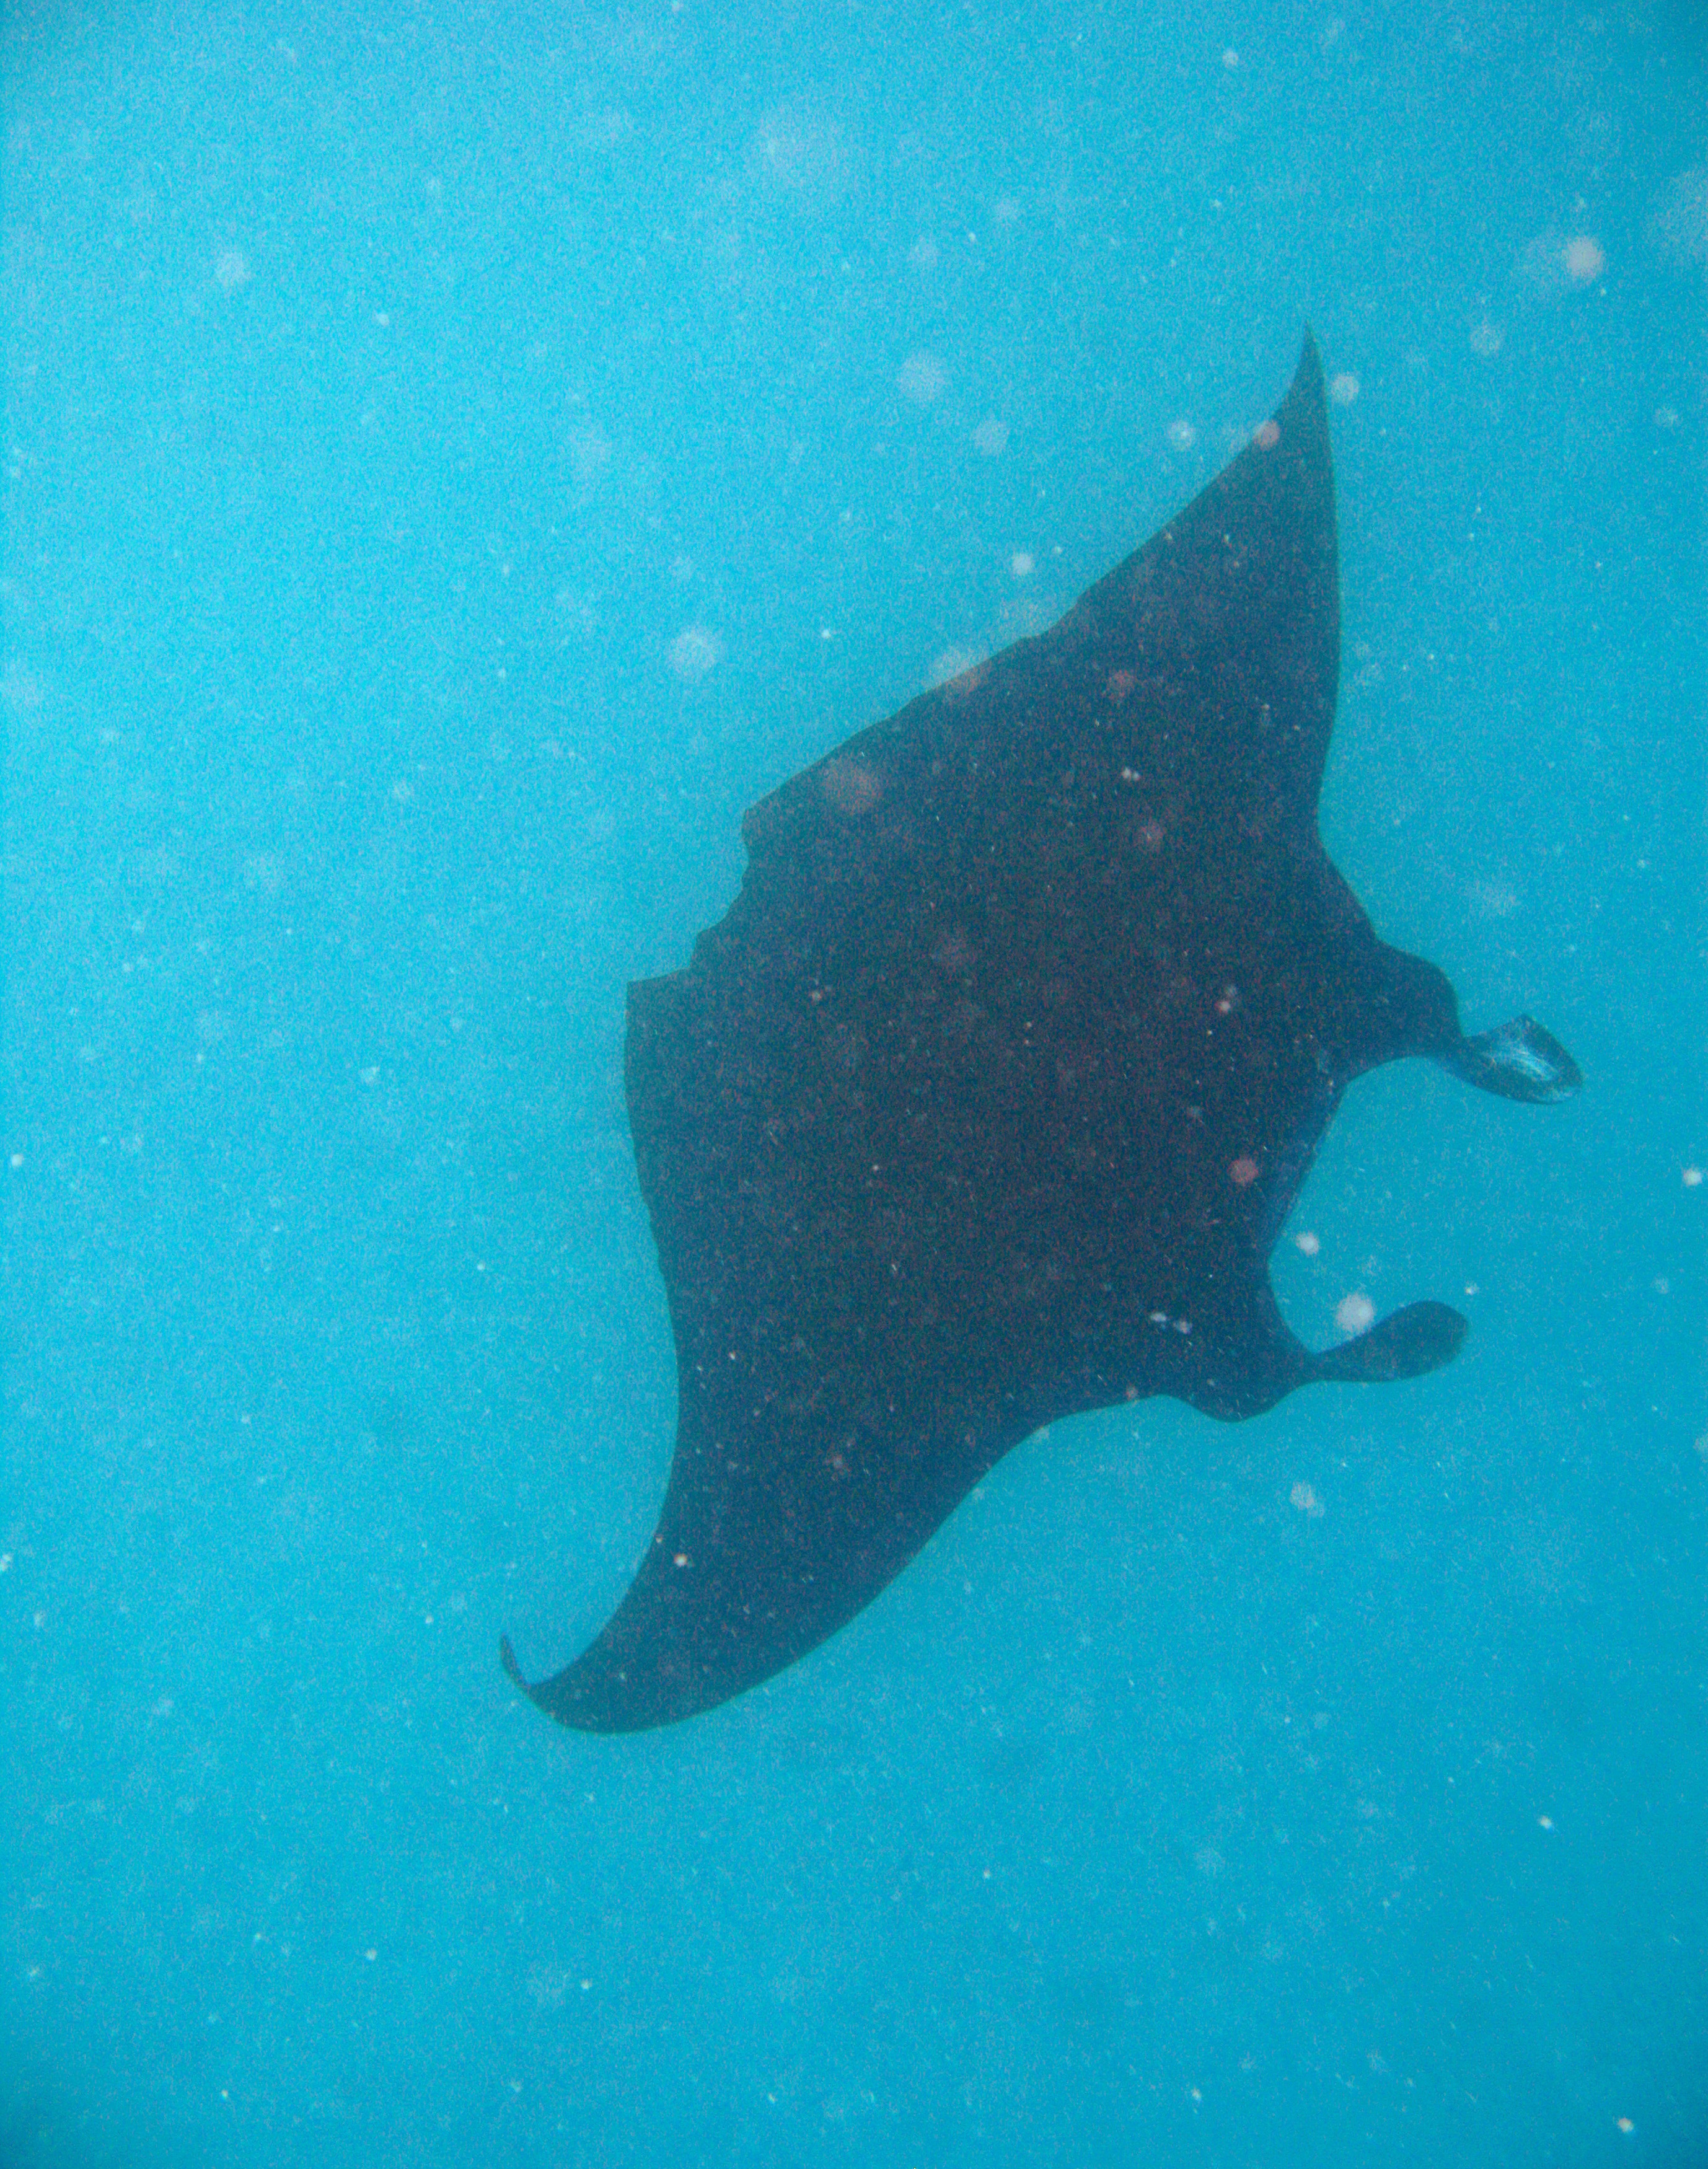 Manta ray swimming underwater in a turquoise sea with its graceful large pectoral fins outspread for feeding